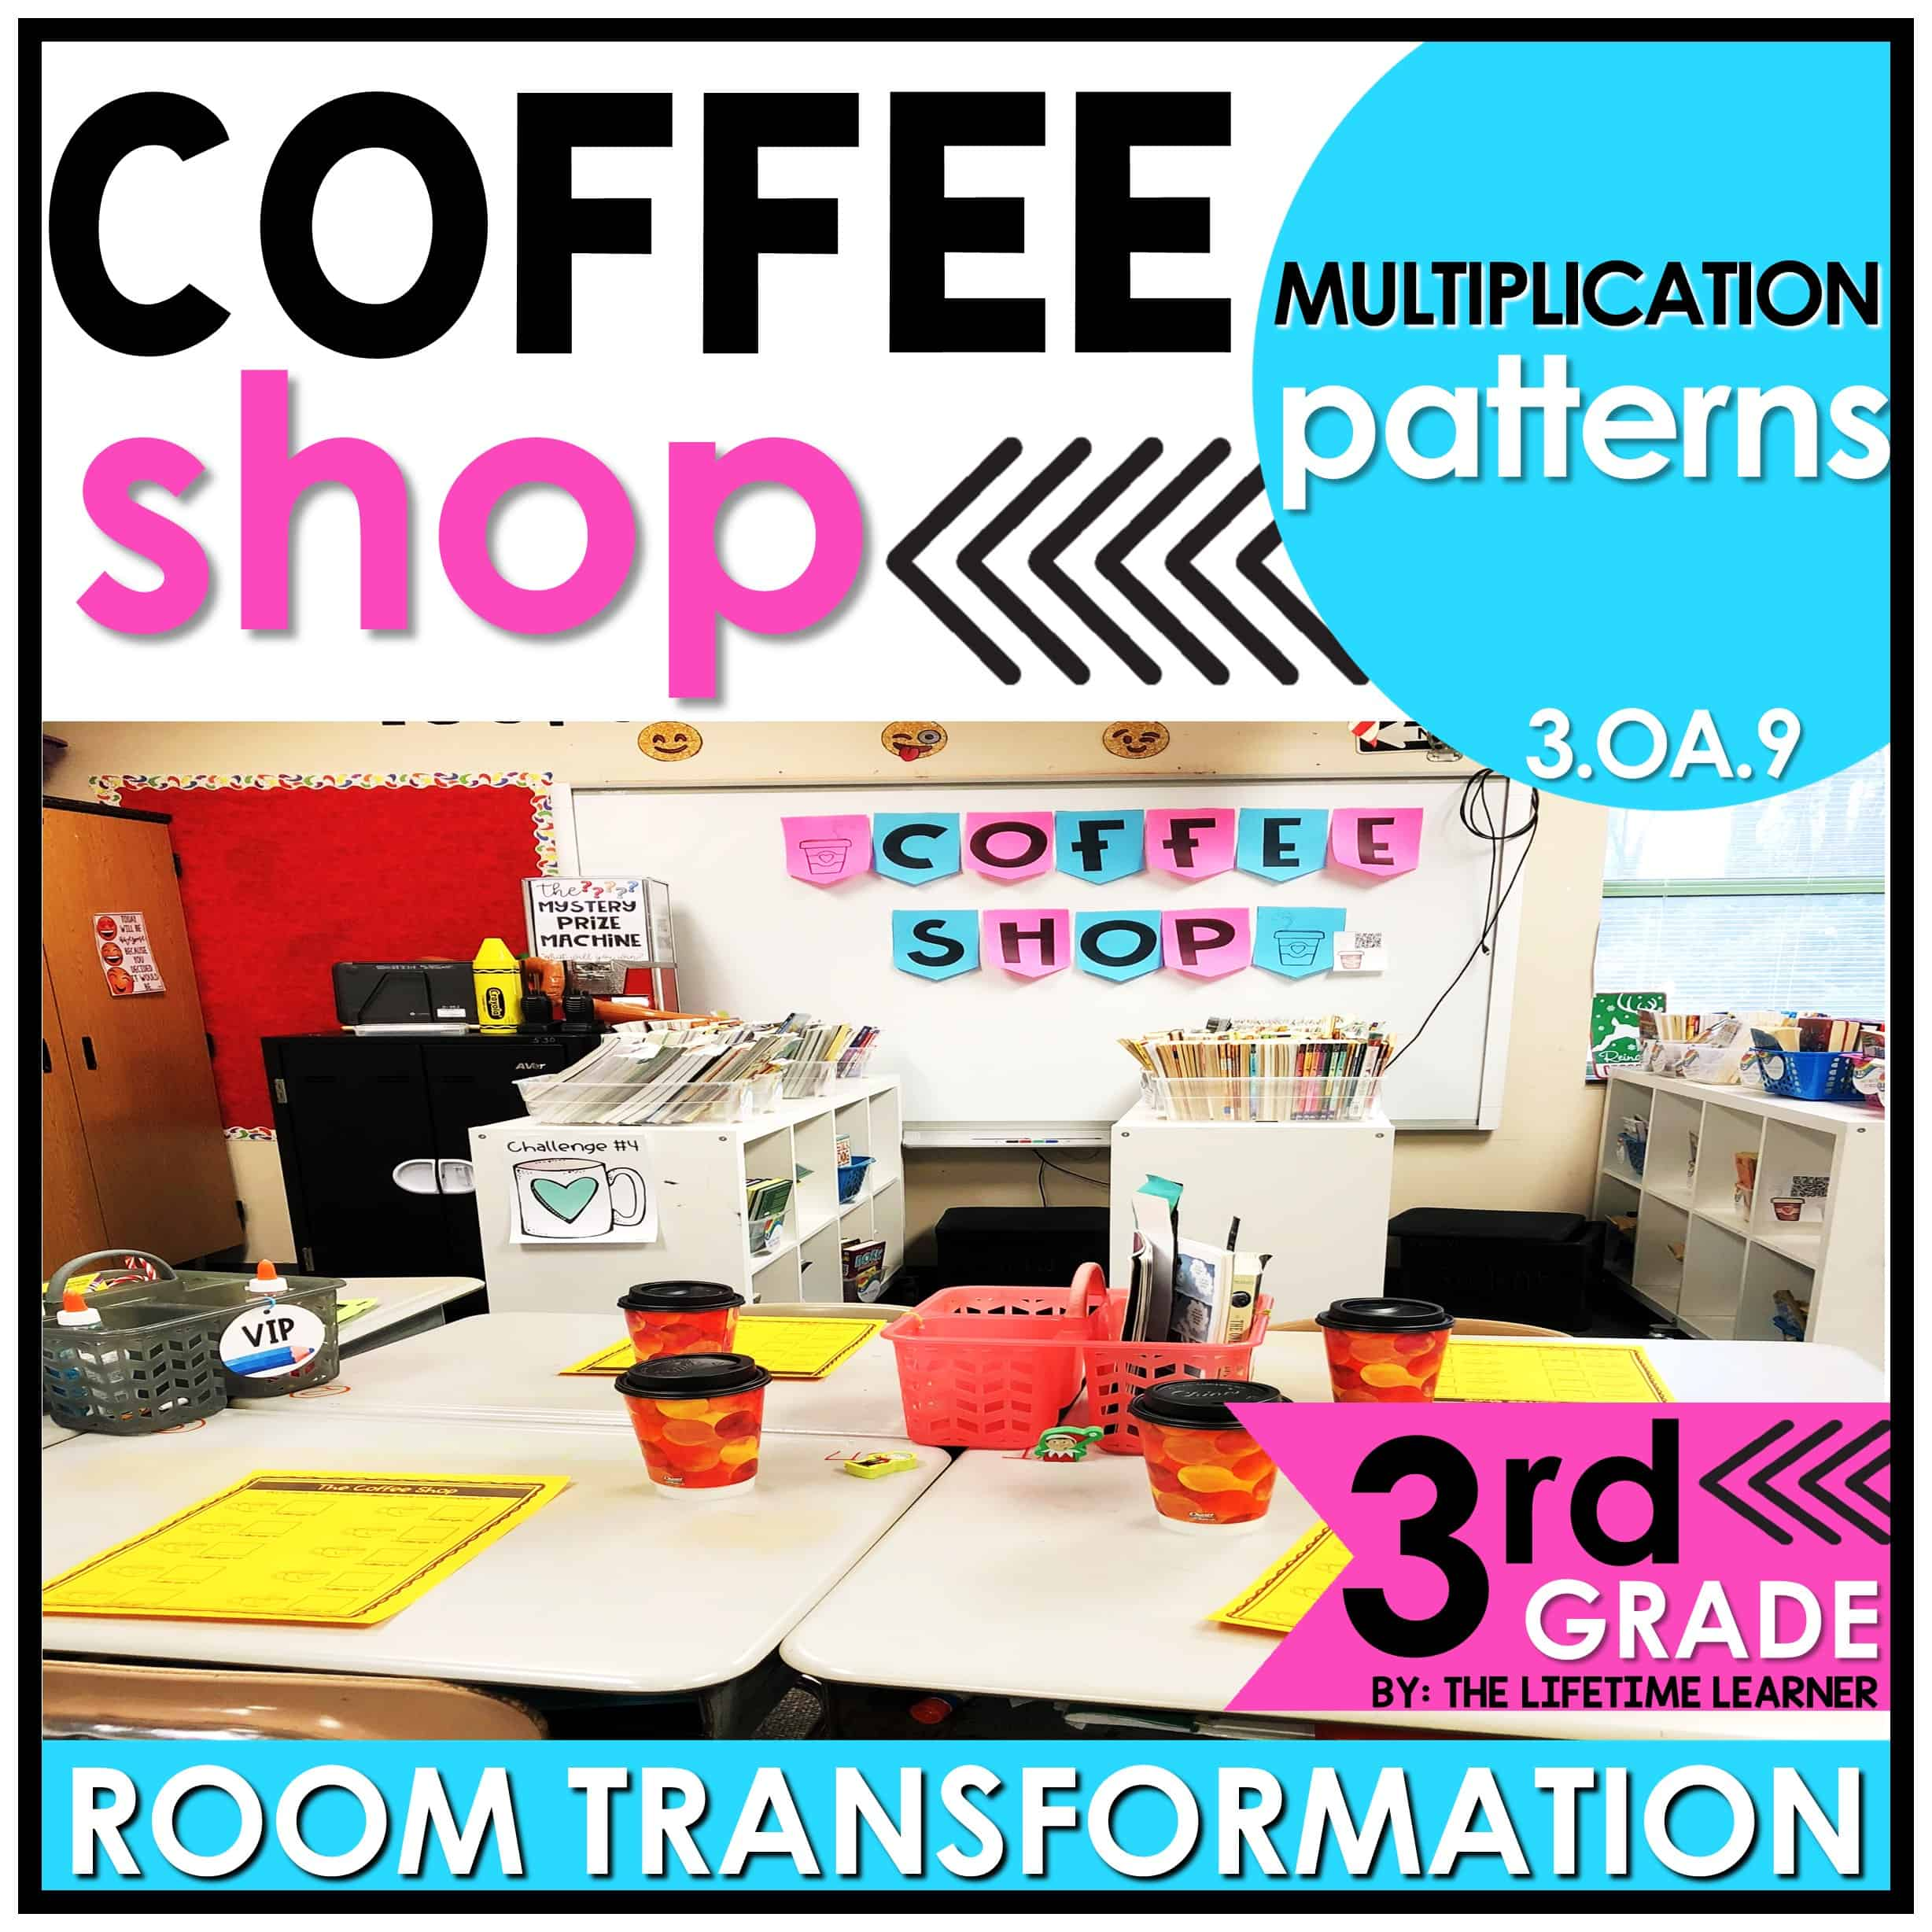 Multiplication Patterns   Coffee Shop Classroom Transformation - The  Lifetime Learner [ 2456 x 2456 Pixel ]